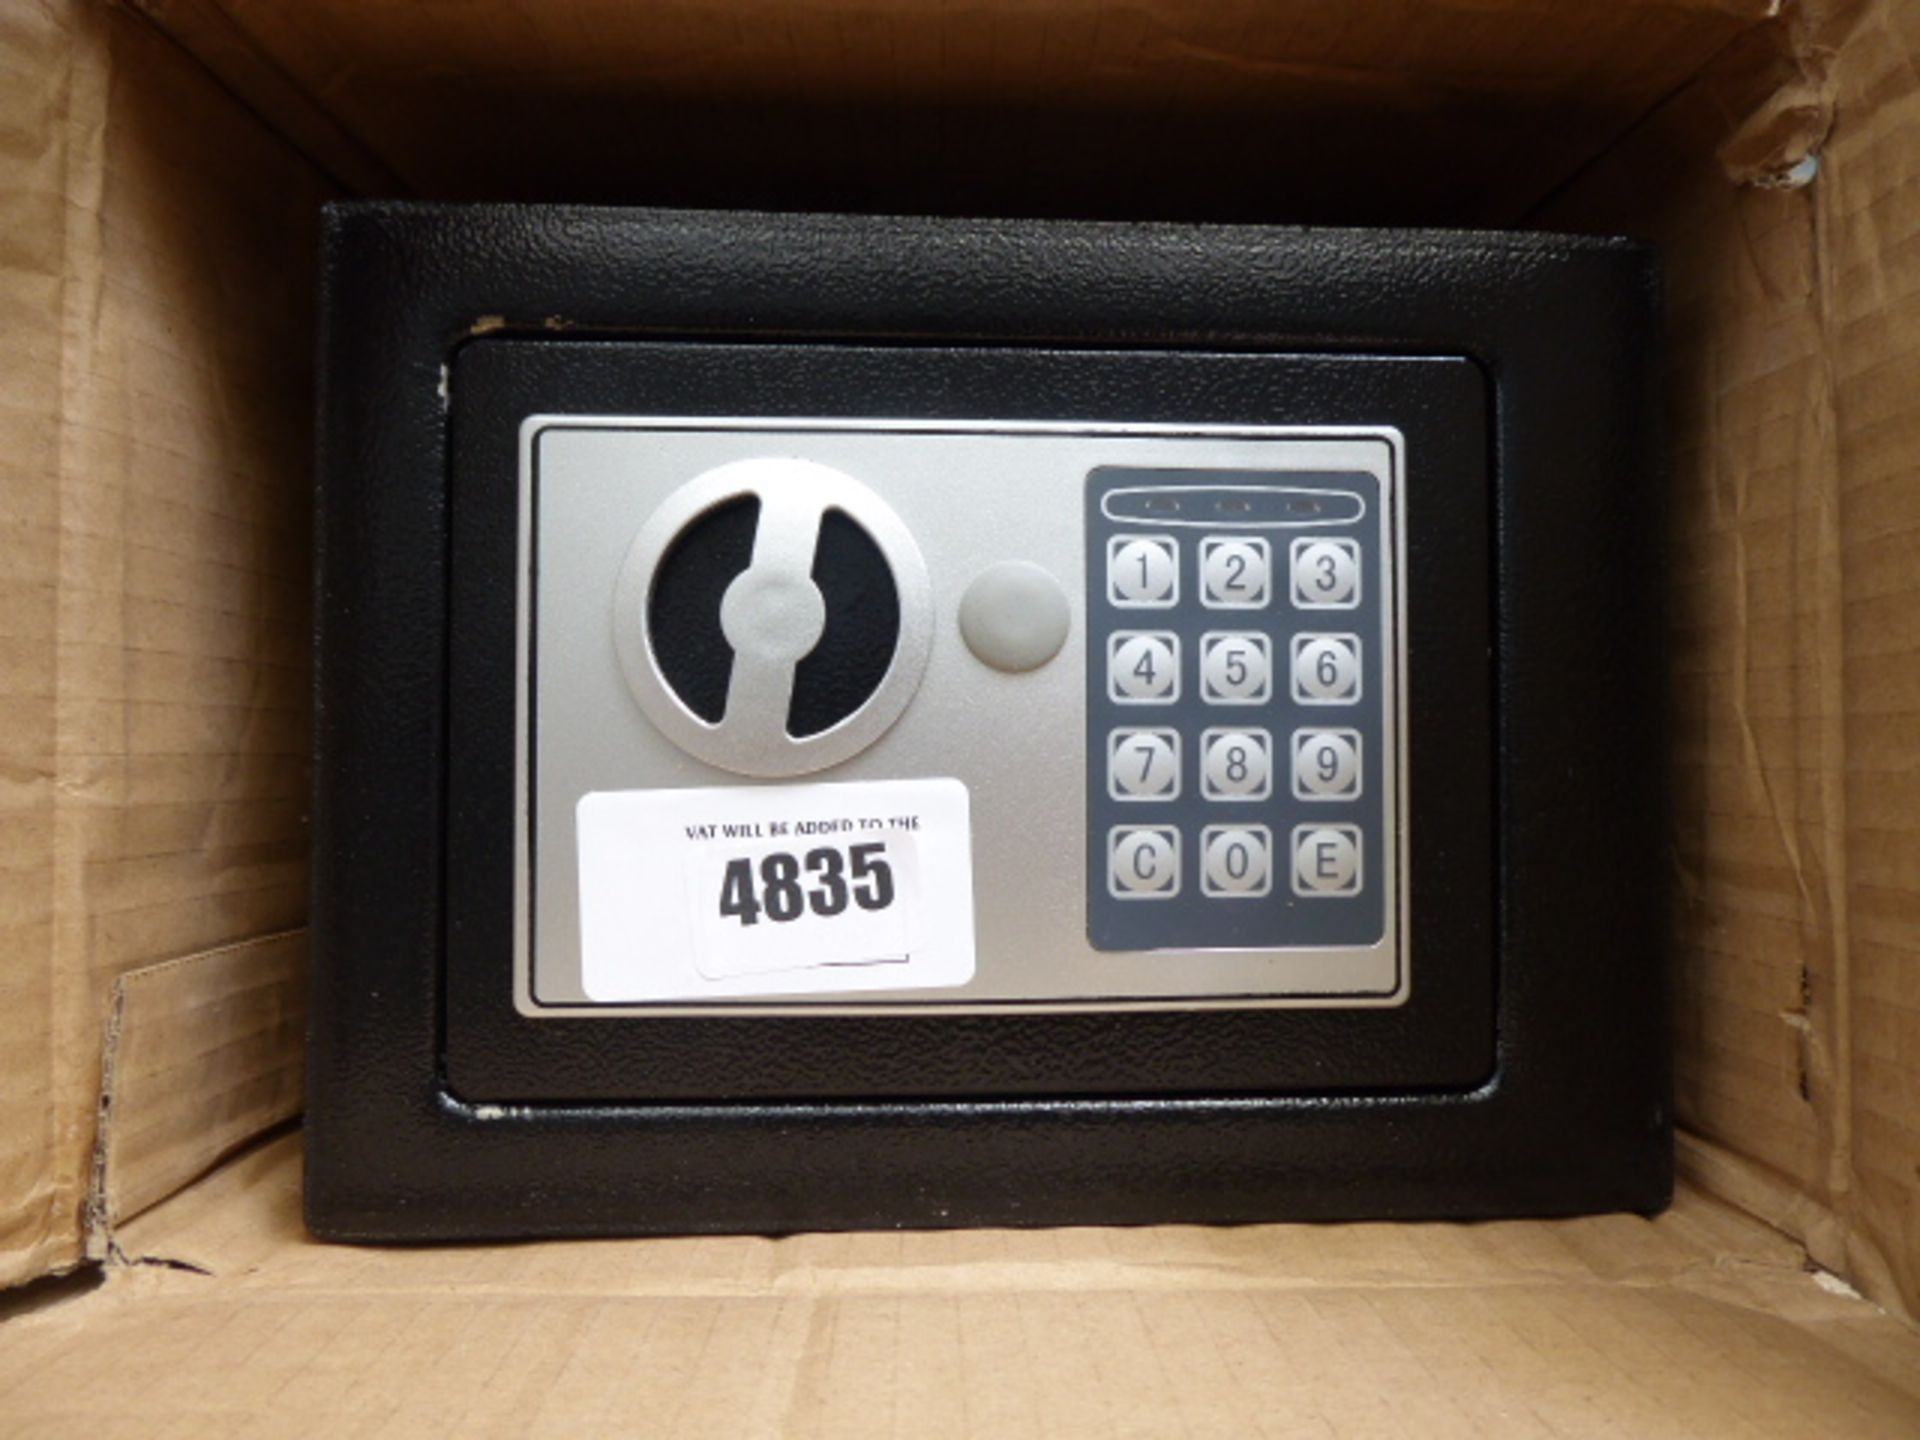 Lot 4835 - Small safe